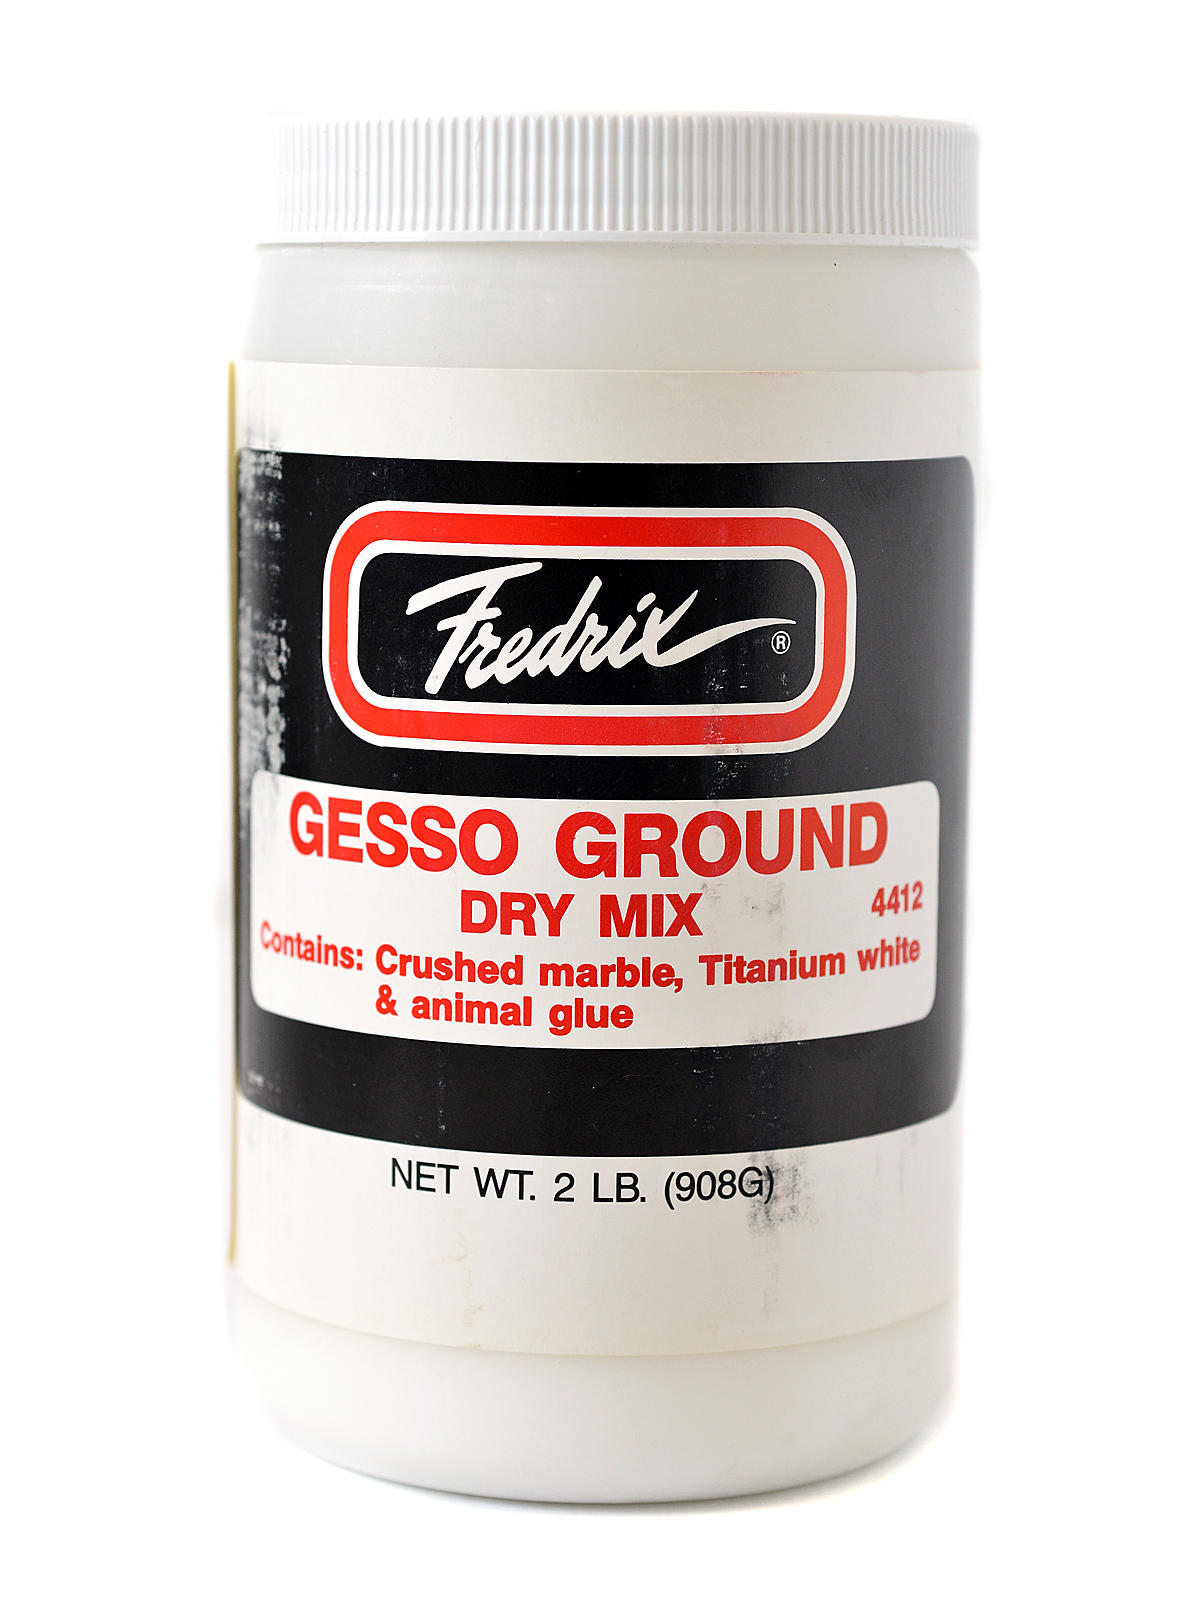 Gesso Ground Dry Mix